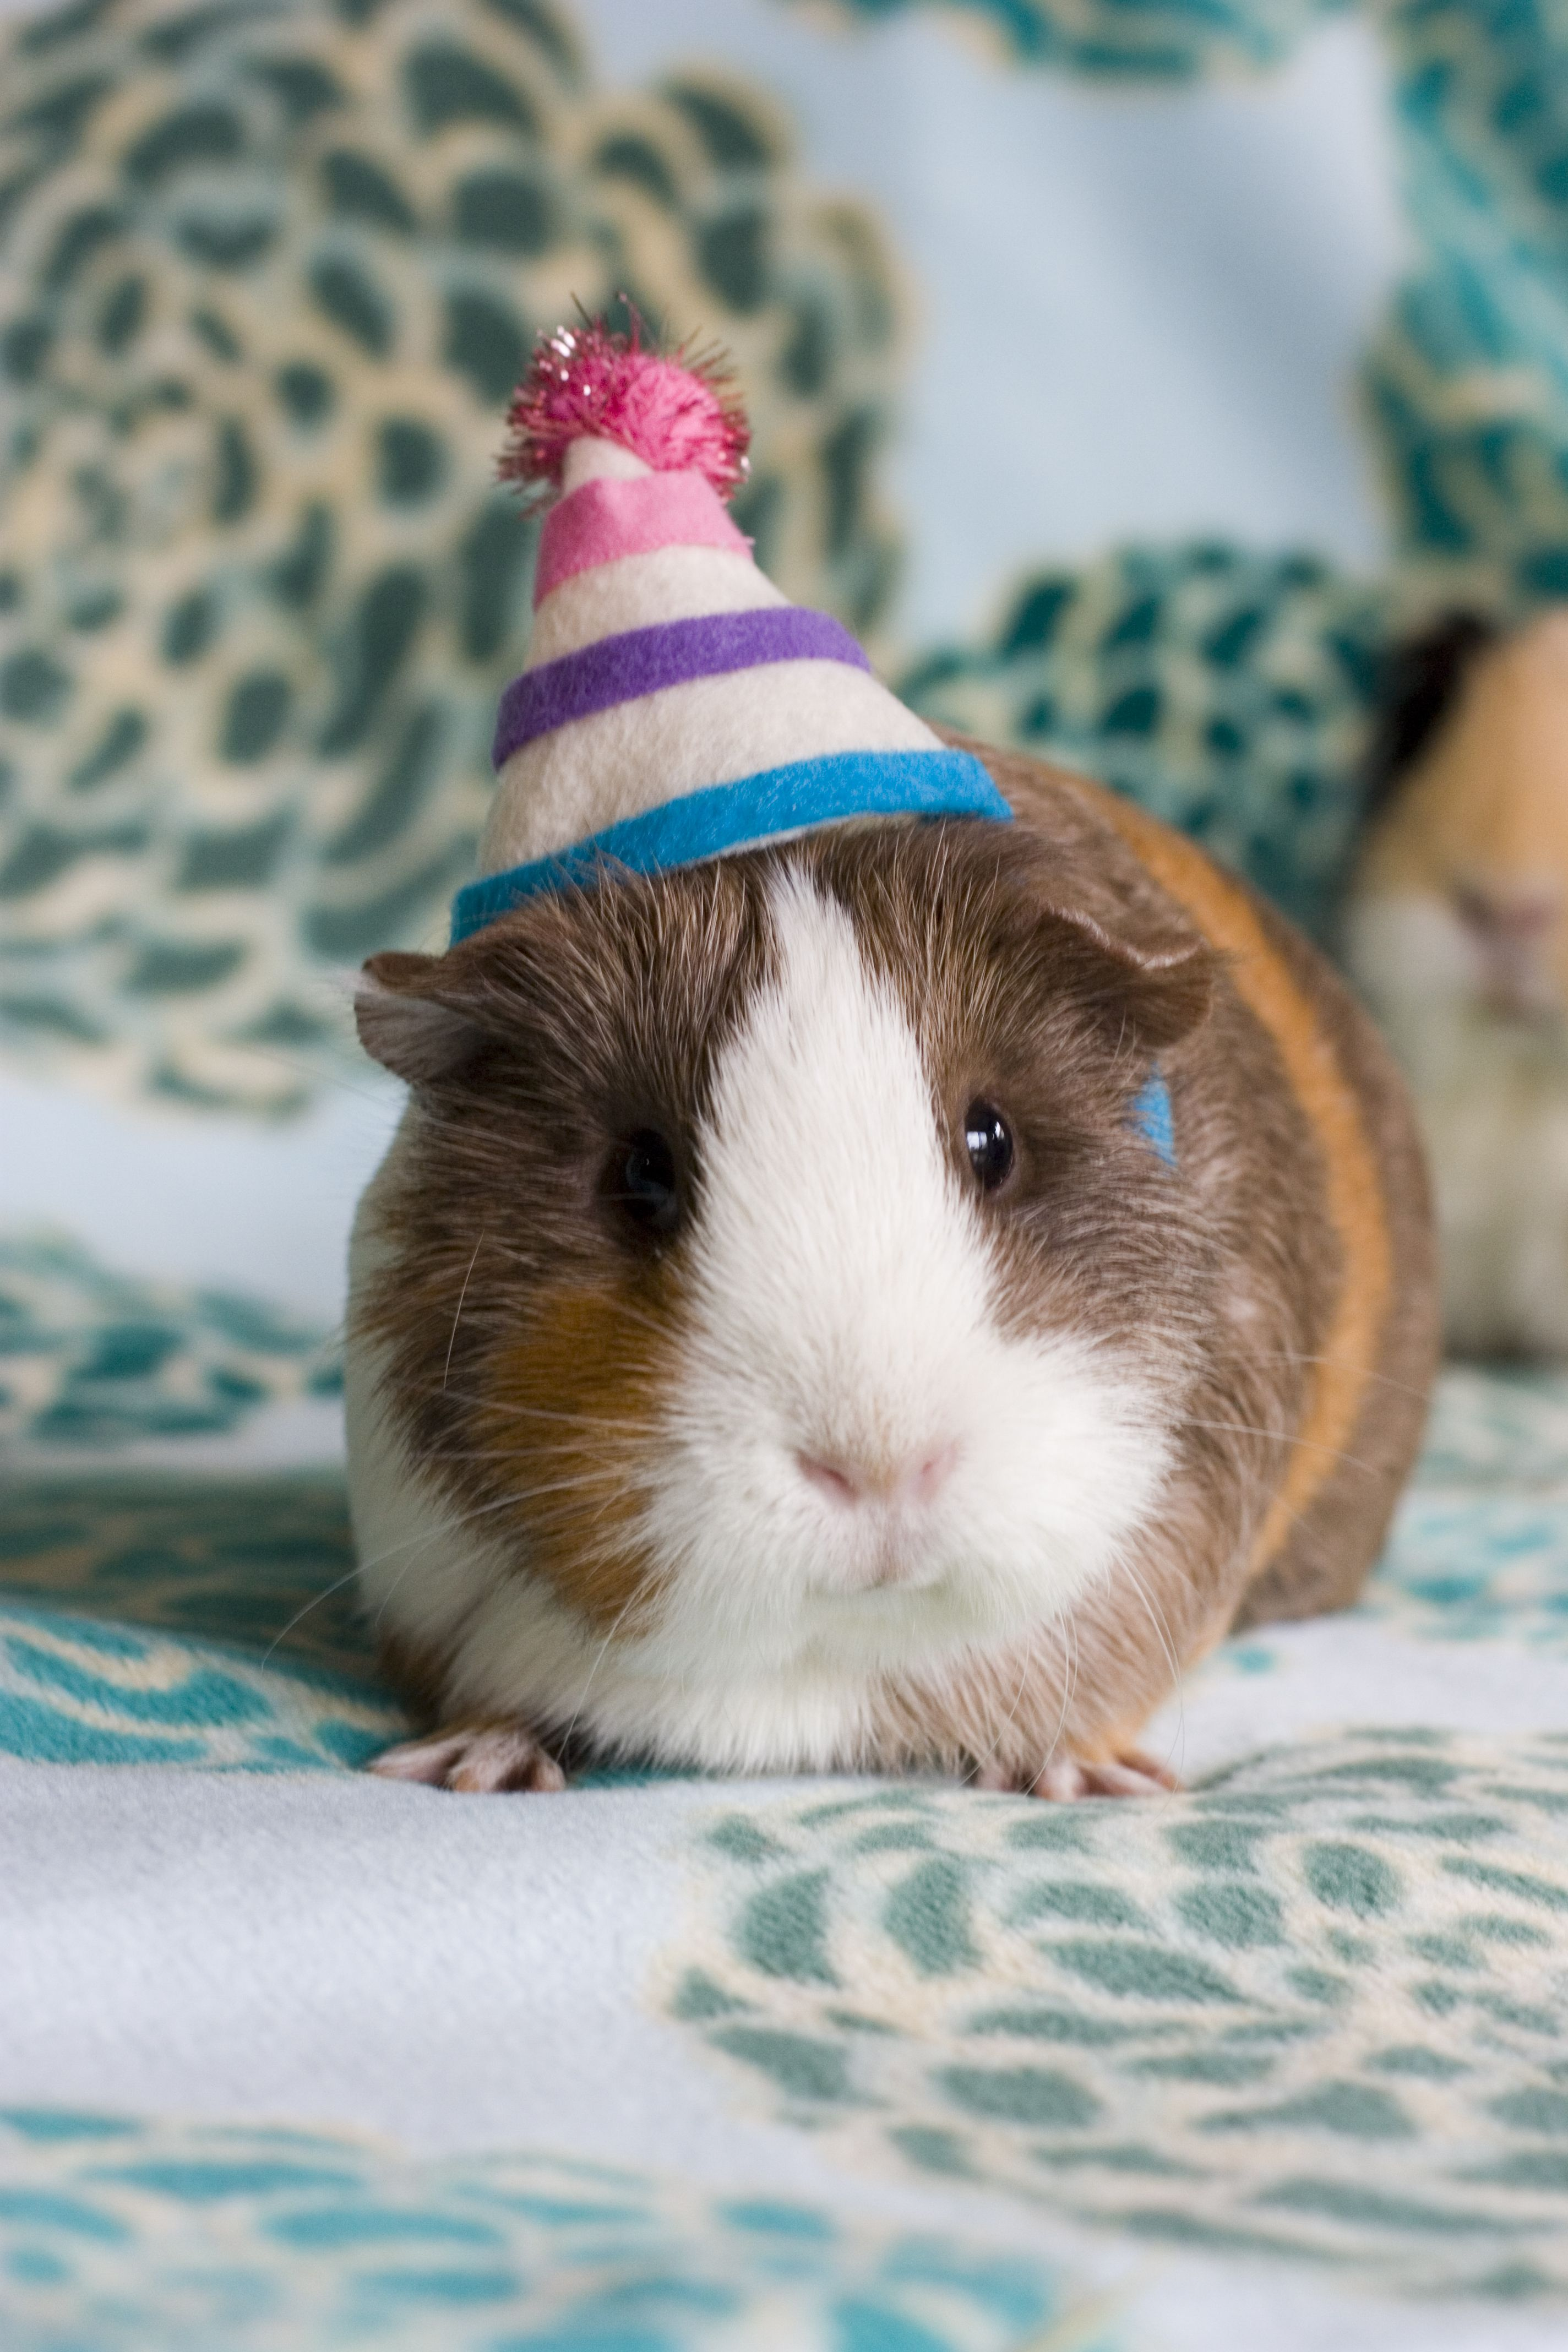 put birthday hat on picture ; 3949b30bfc40baa67154423ea1848bf9